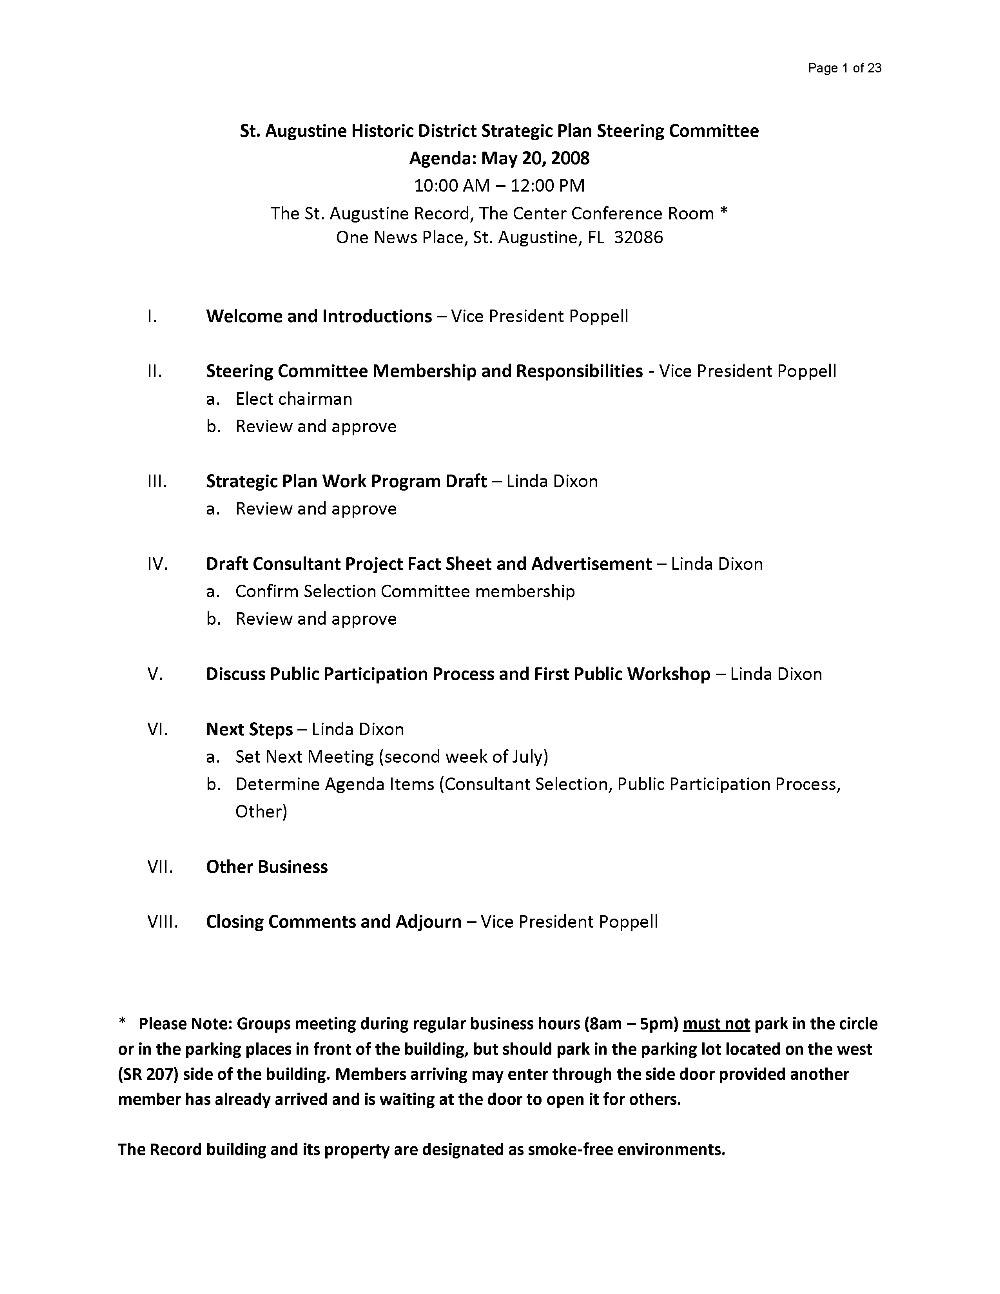 St. Augustine Historic District Strategic Plan Steering Committee and public forum agenda - Page 1